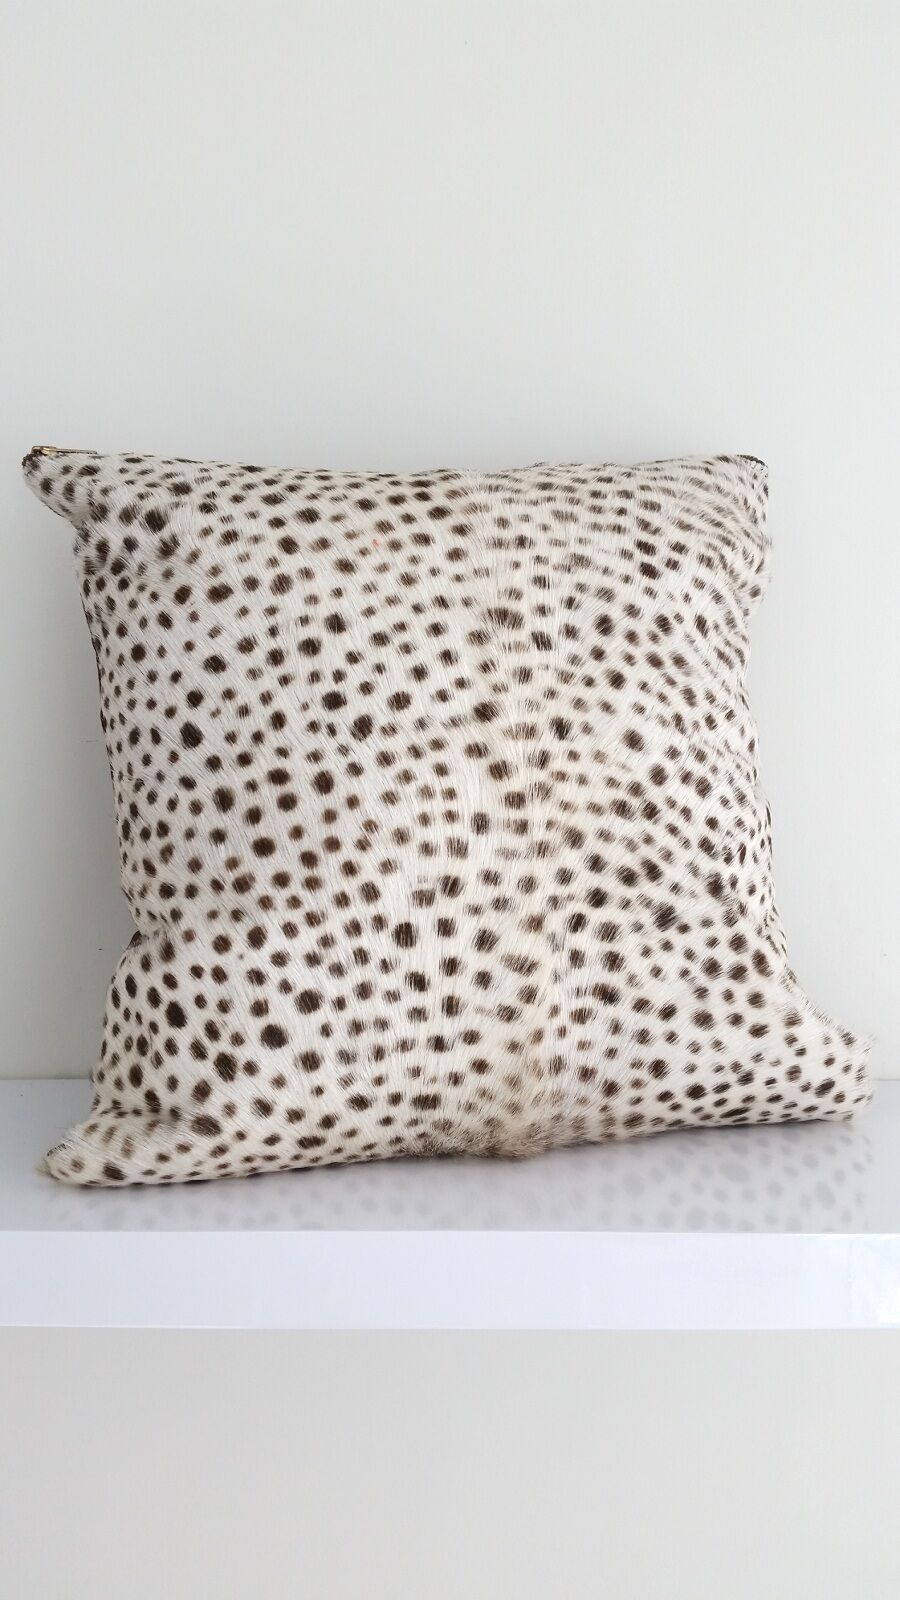 Genuine leather cover + cushion real fur hide hand painted leopard pattern  95